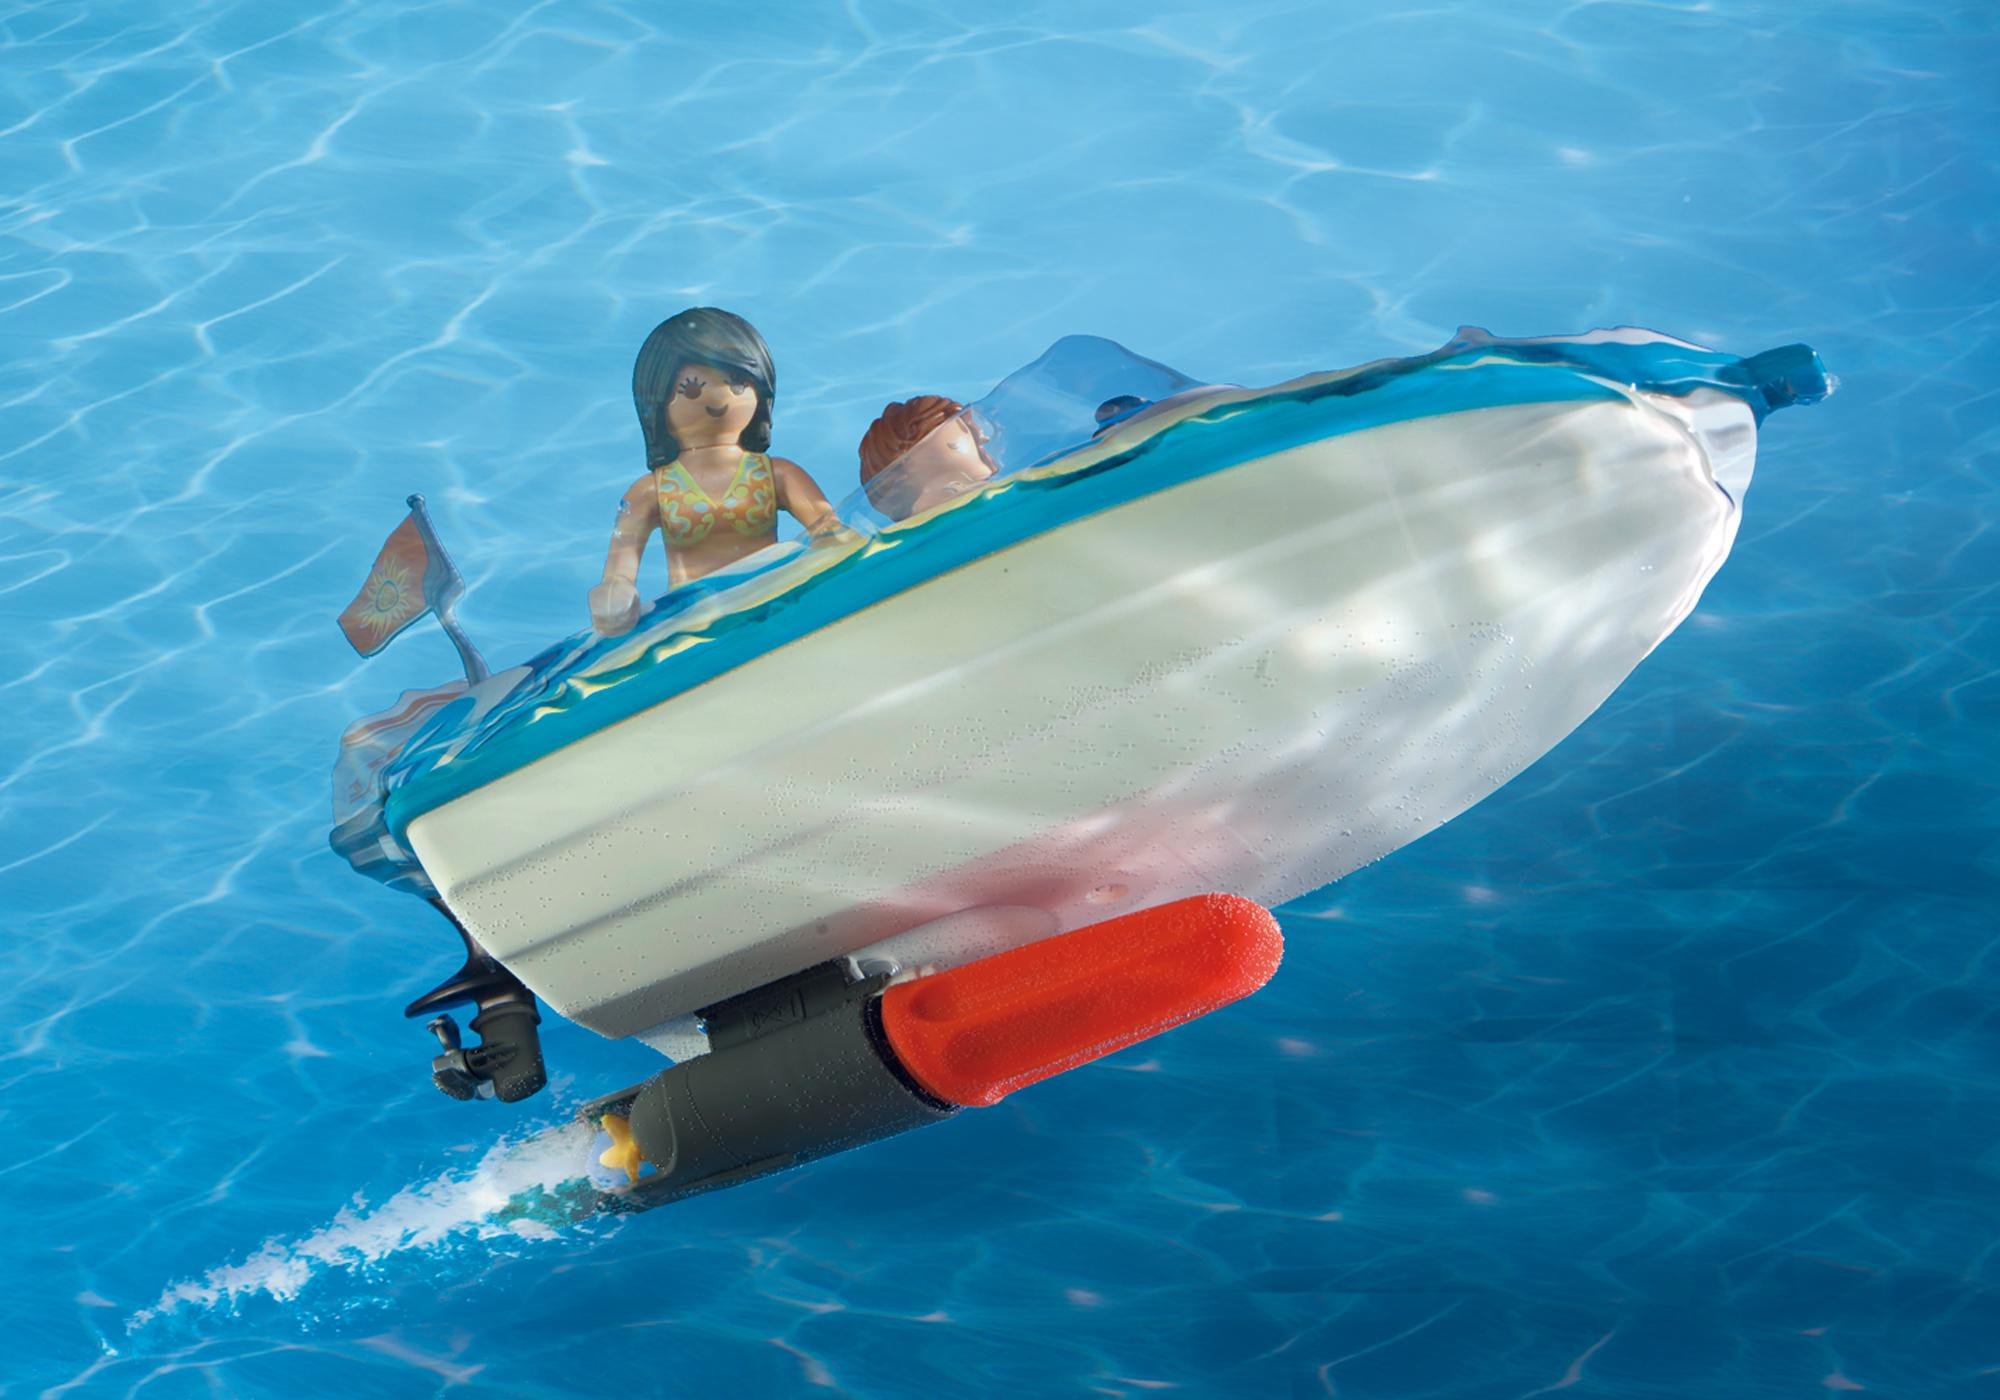 http://media.playmobil.com/i/playmobil/6864_product_extra3/Surfer Pickup with Speedboat